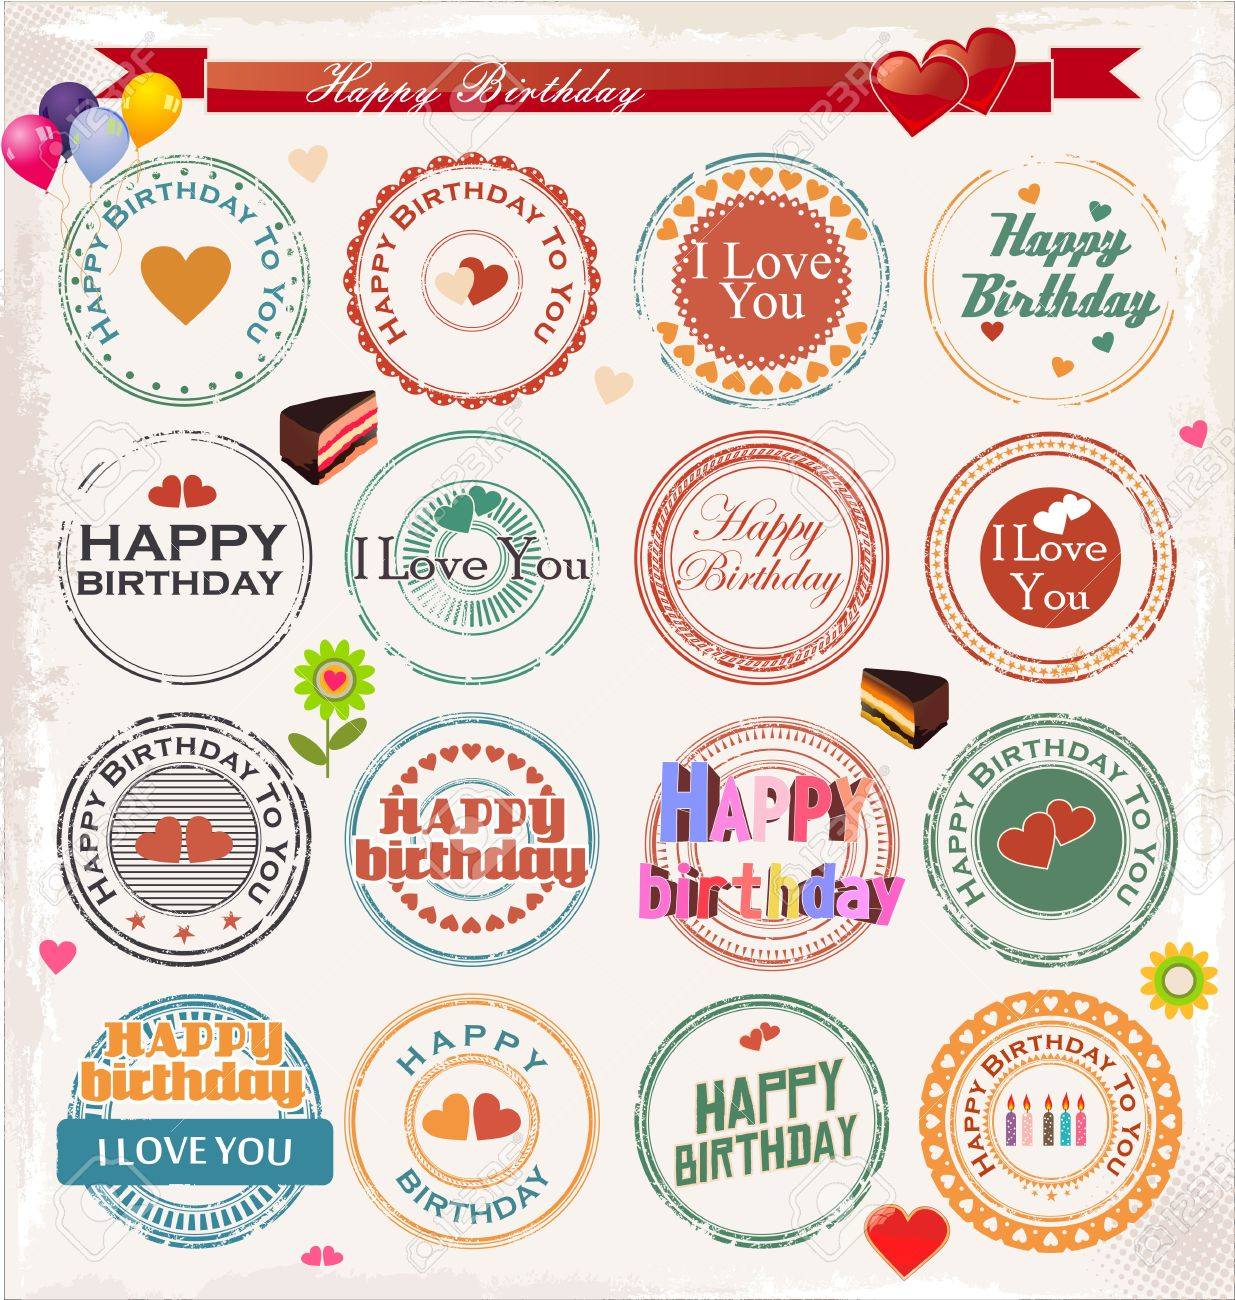 Happy birthday stamp collection Stock Vector - 19566328